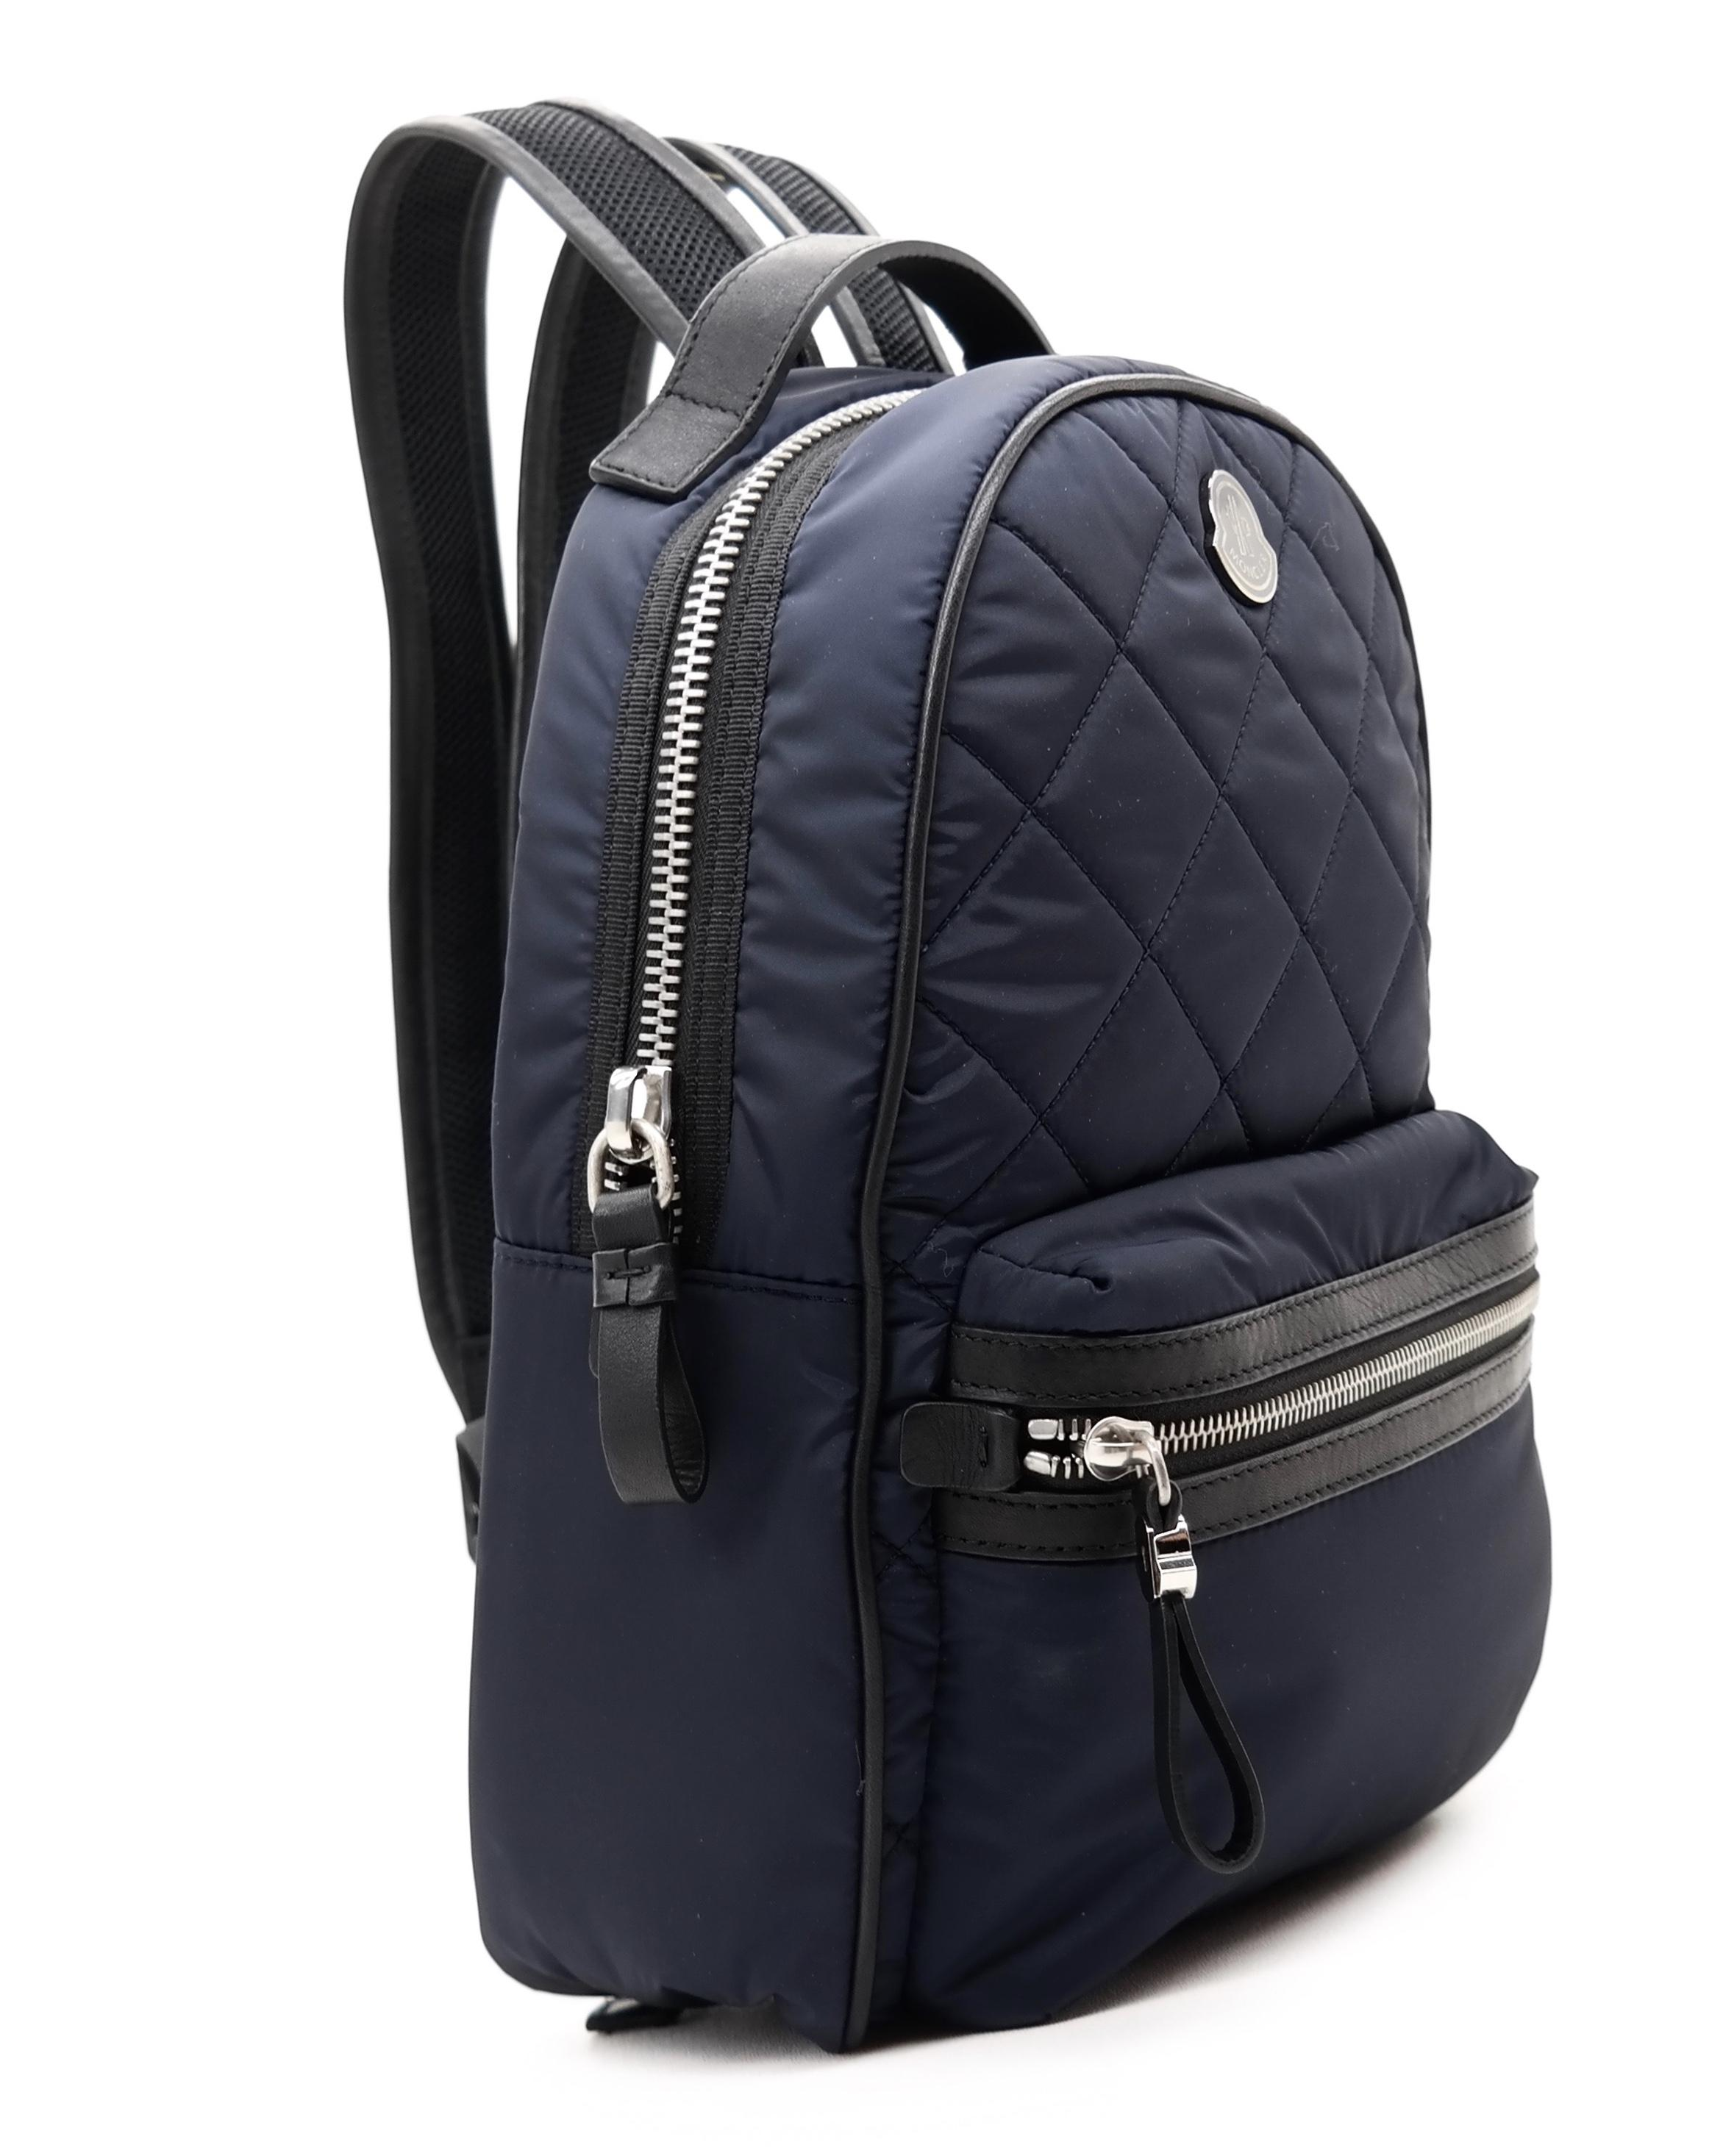 Black Nylon Georgette Backpack Moncler gPKaMUHN